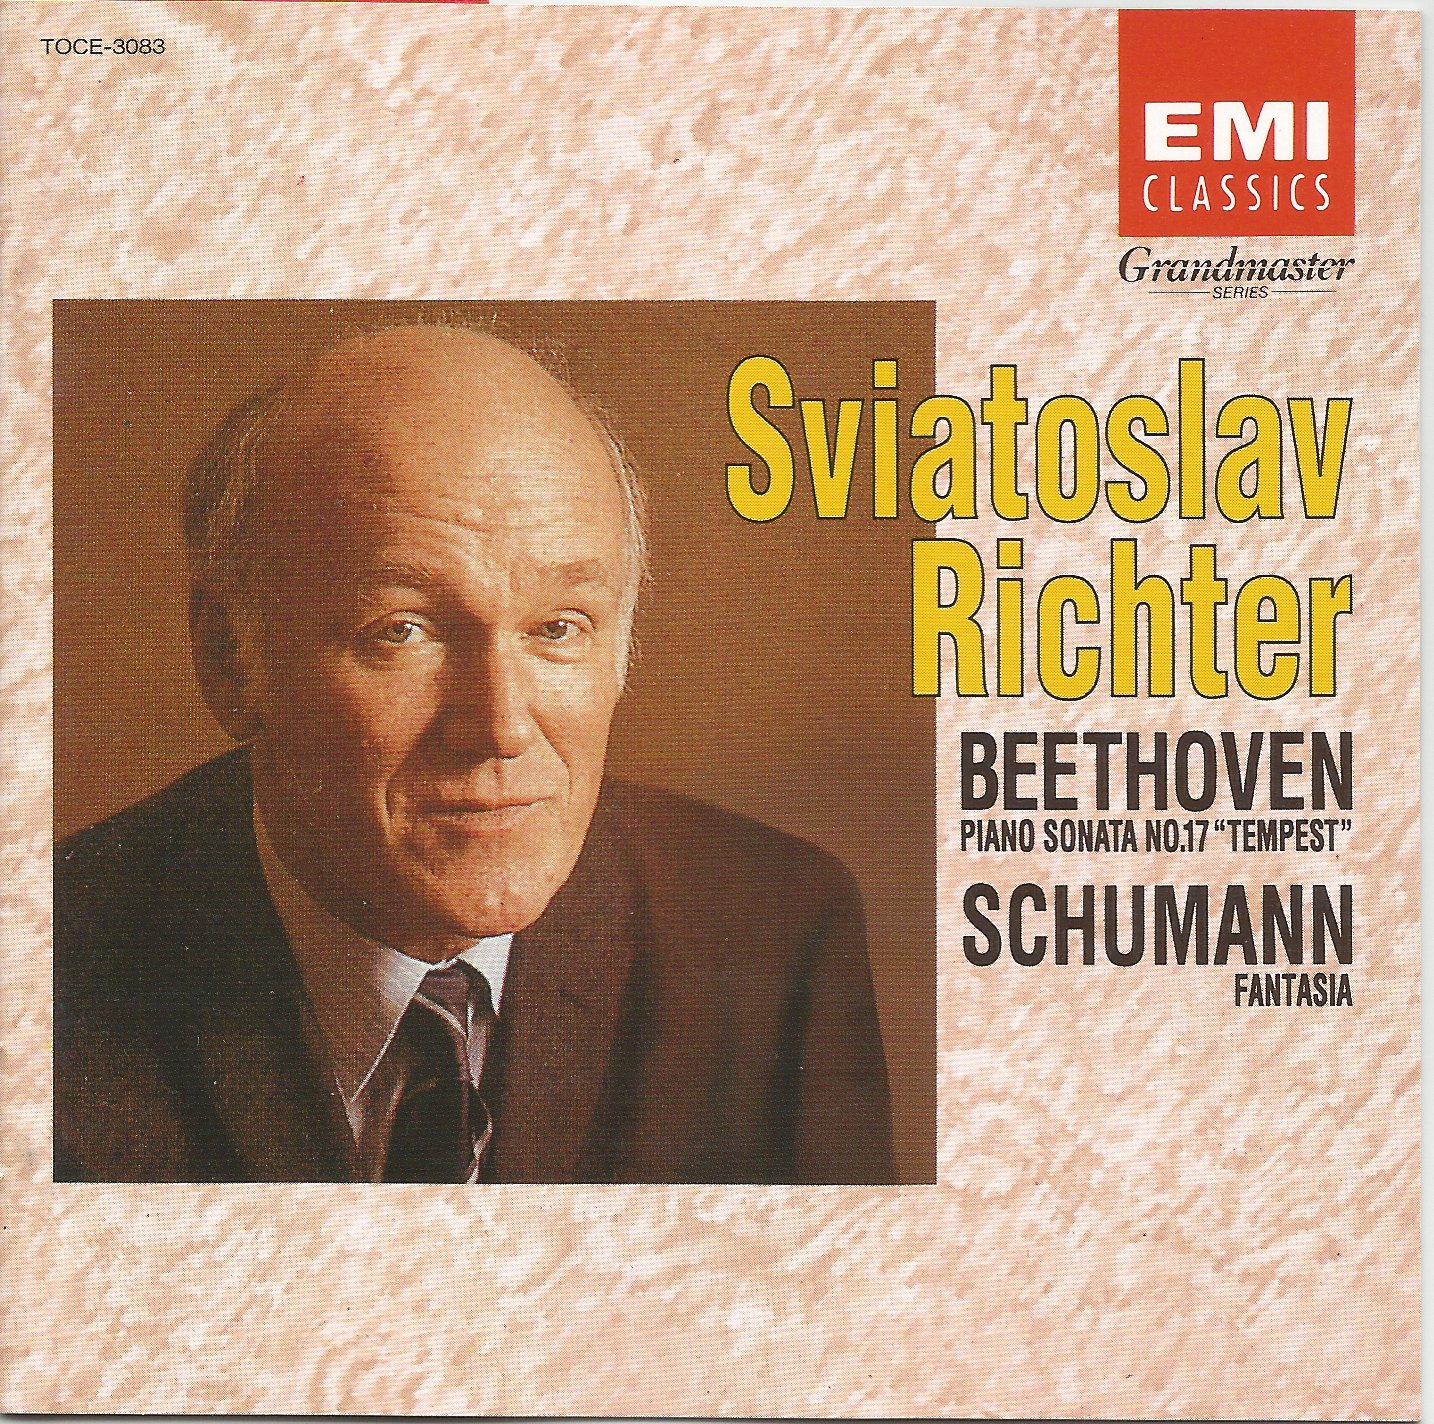 Sviatoslav Richter; Early 1960s EMI recordings